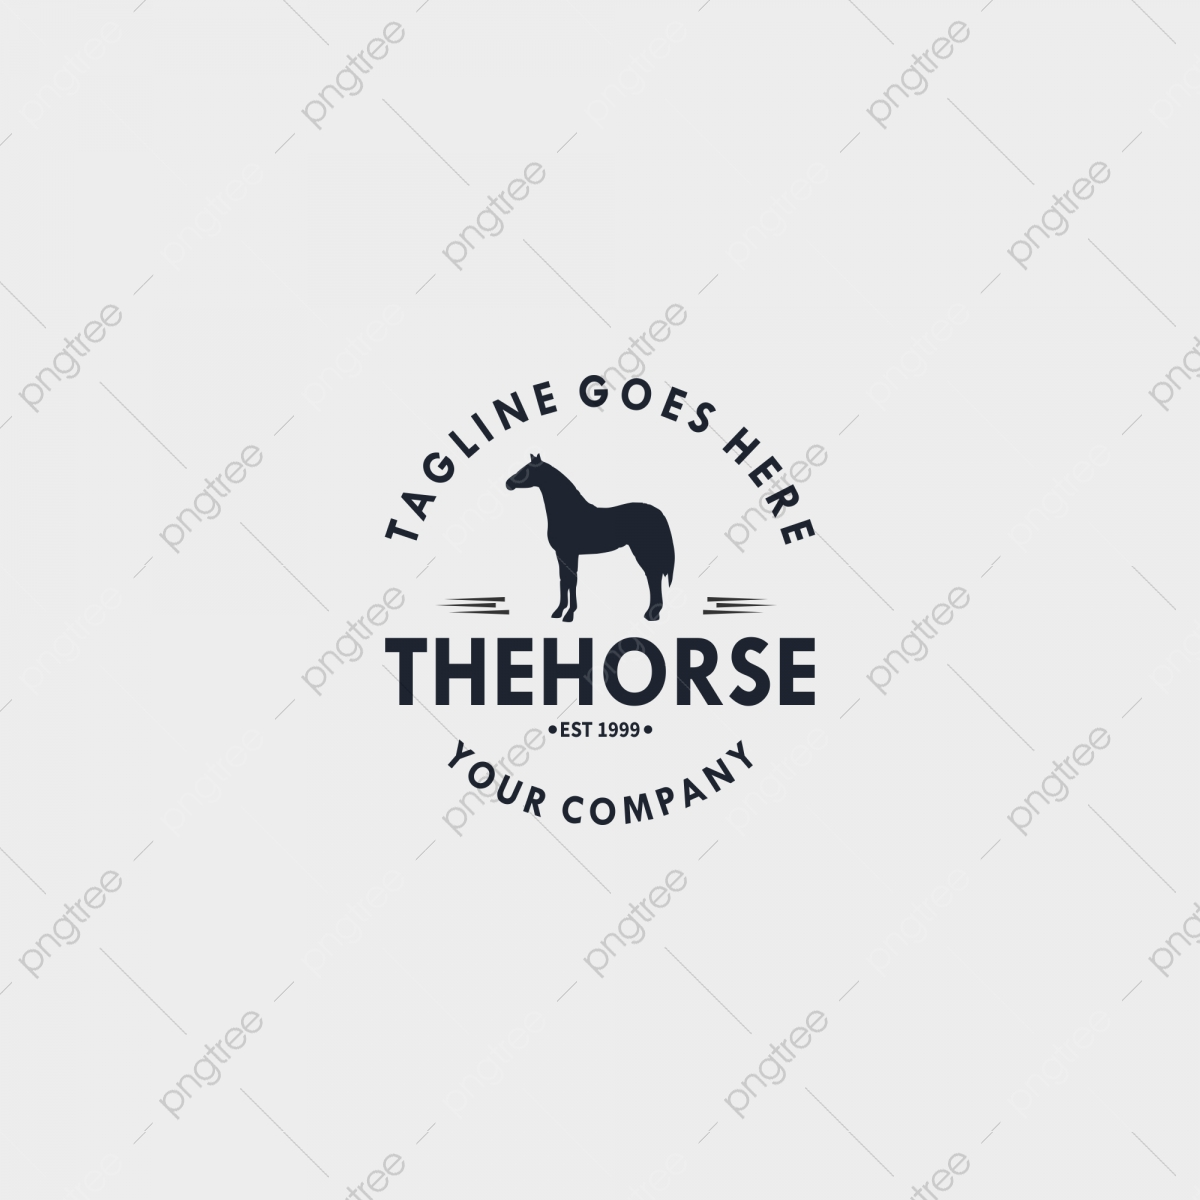 Horse Vintage Logo Design Template Design Elements For Logo Label Emblem Sign Vector Illustration Vector Template Download On Pngtree